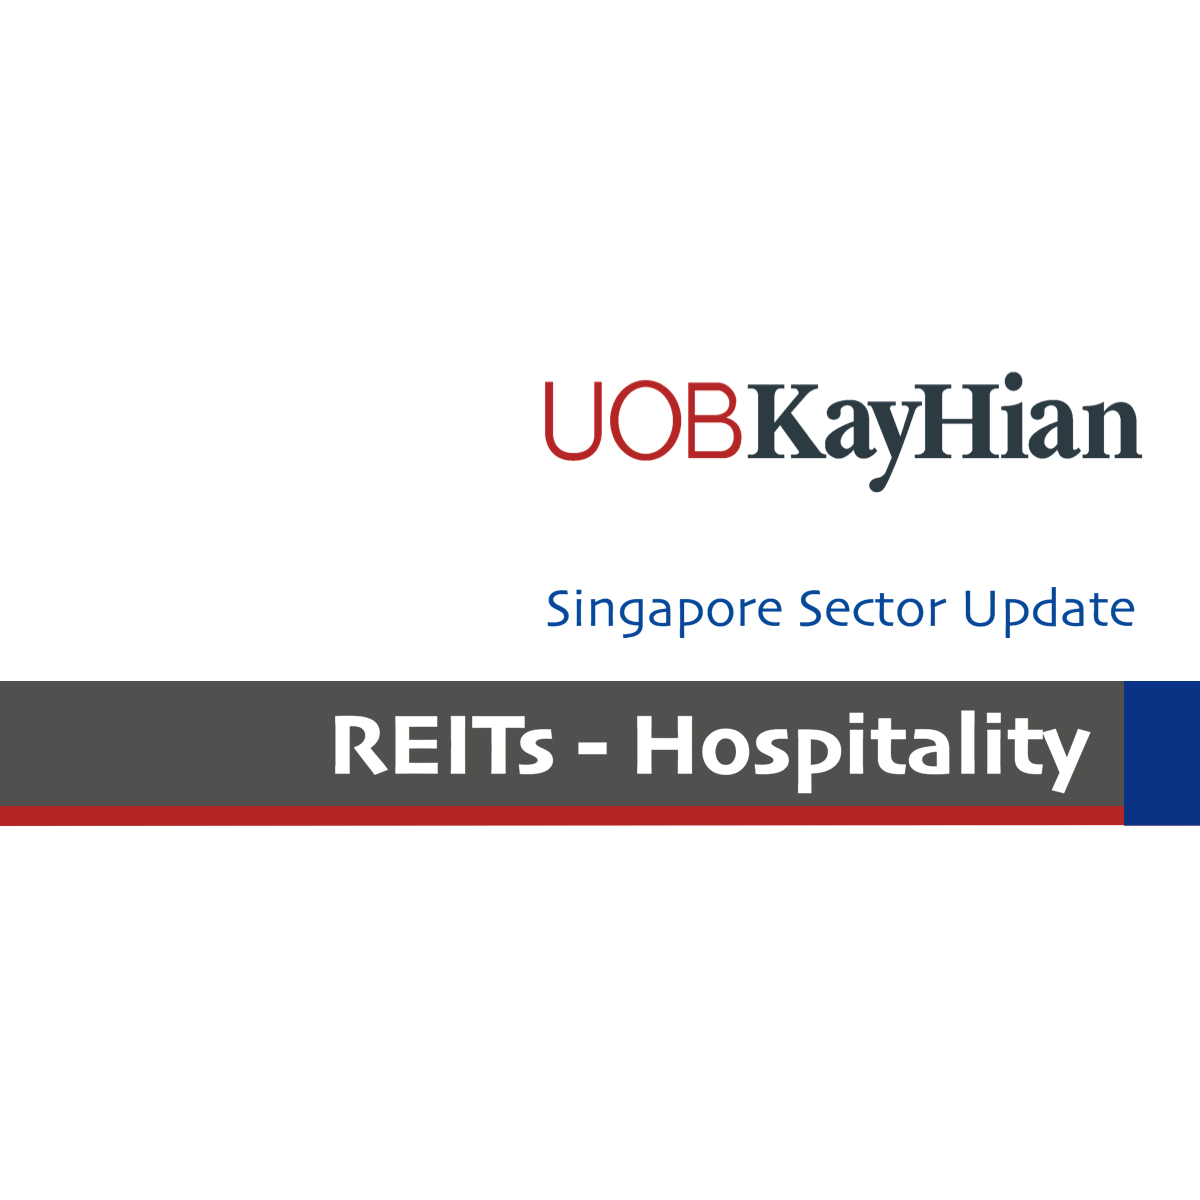 Singapore REITs - UOB Kay Hian 2017-12-15: Hospitality To Shine In 2018